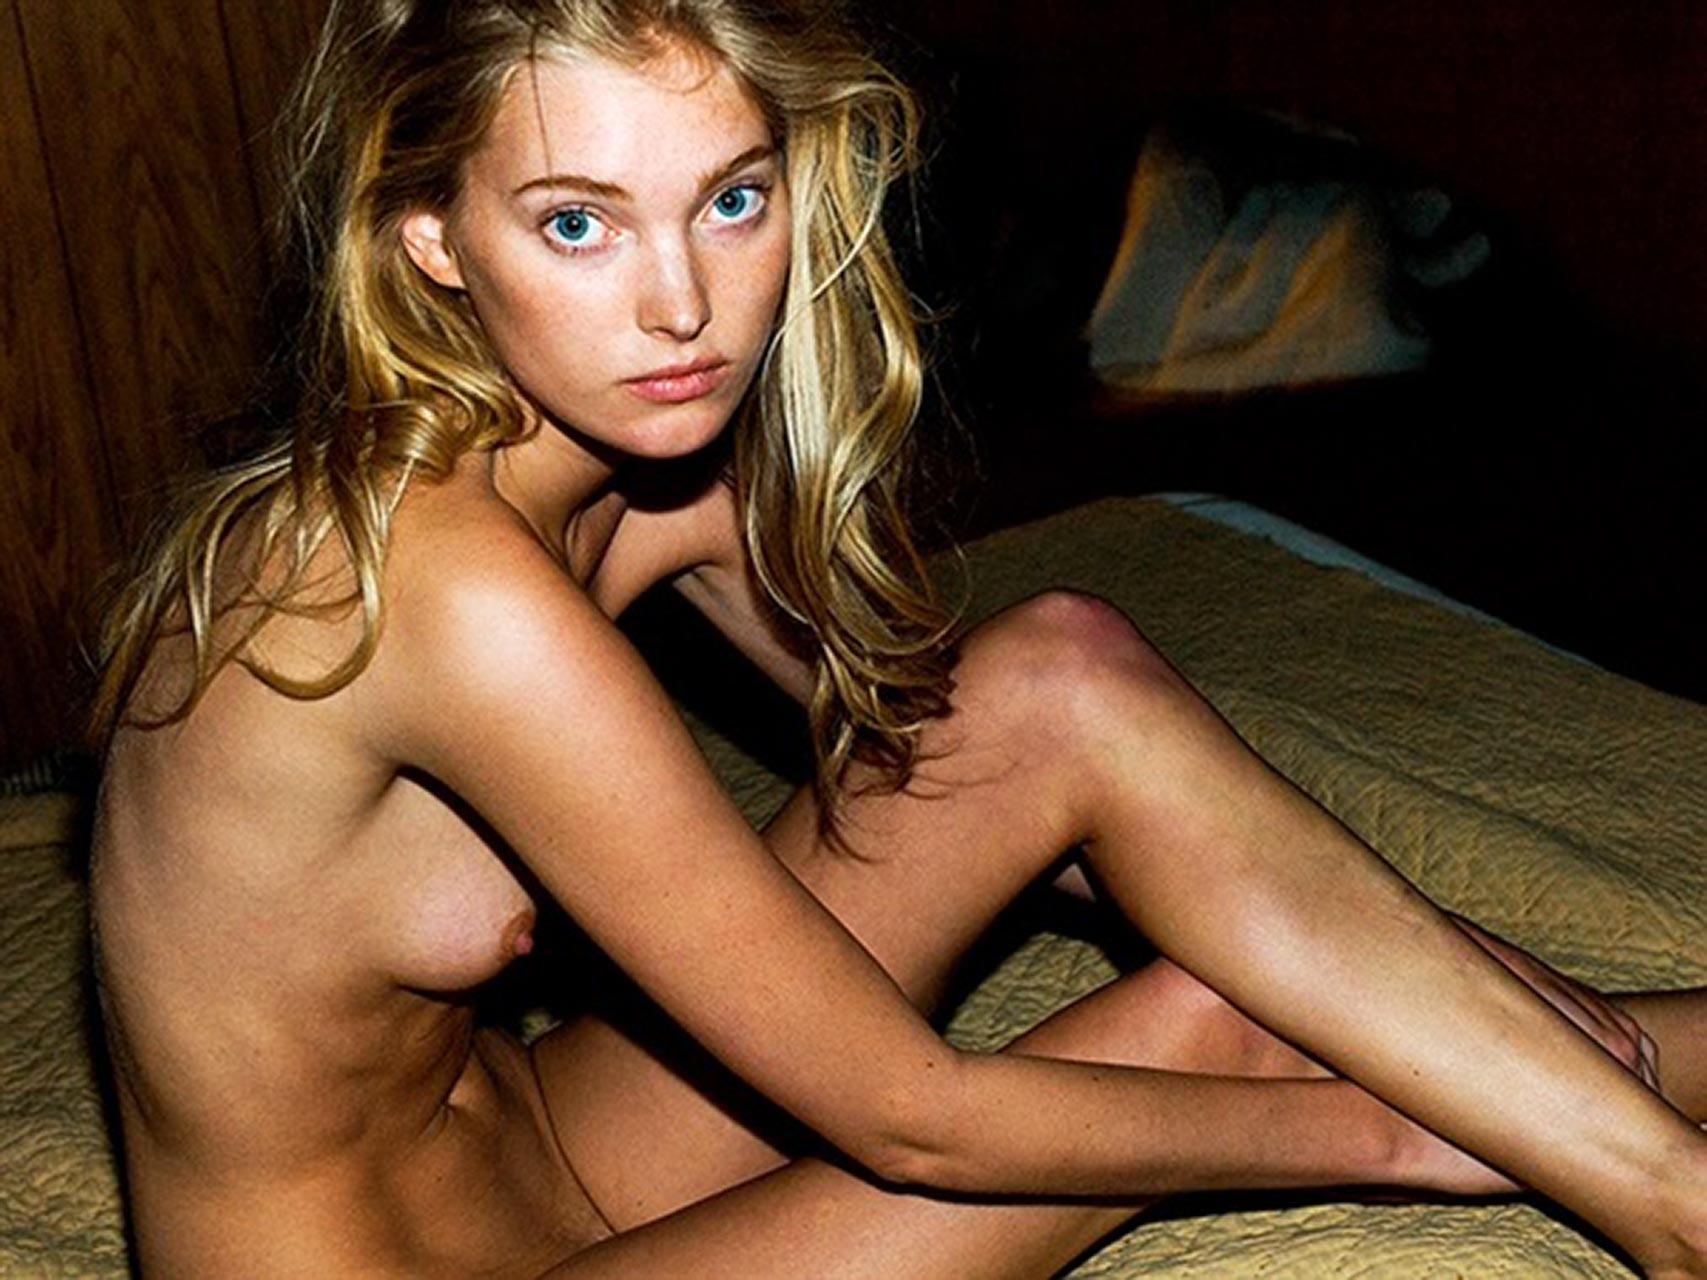 Fuck Elsa Hosk naked (87 photos), Topless, Bikini, Boobs, swimsuit 2019